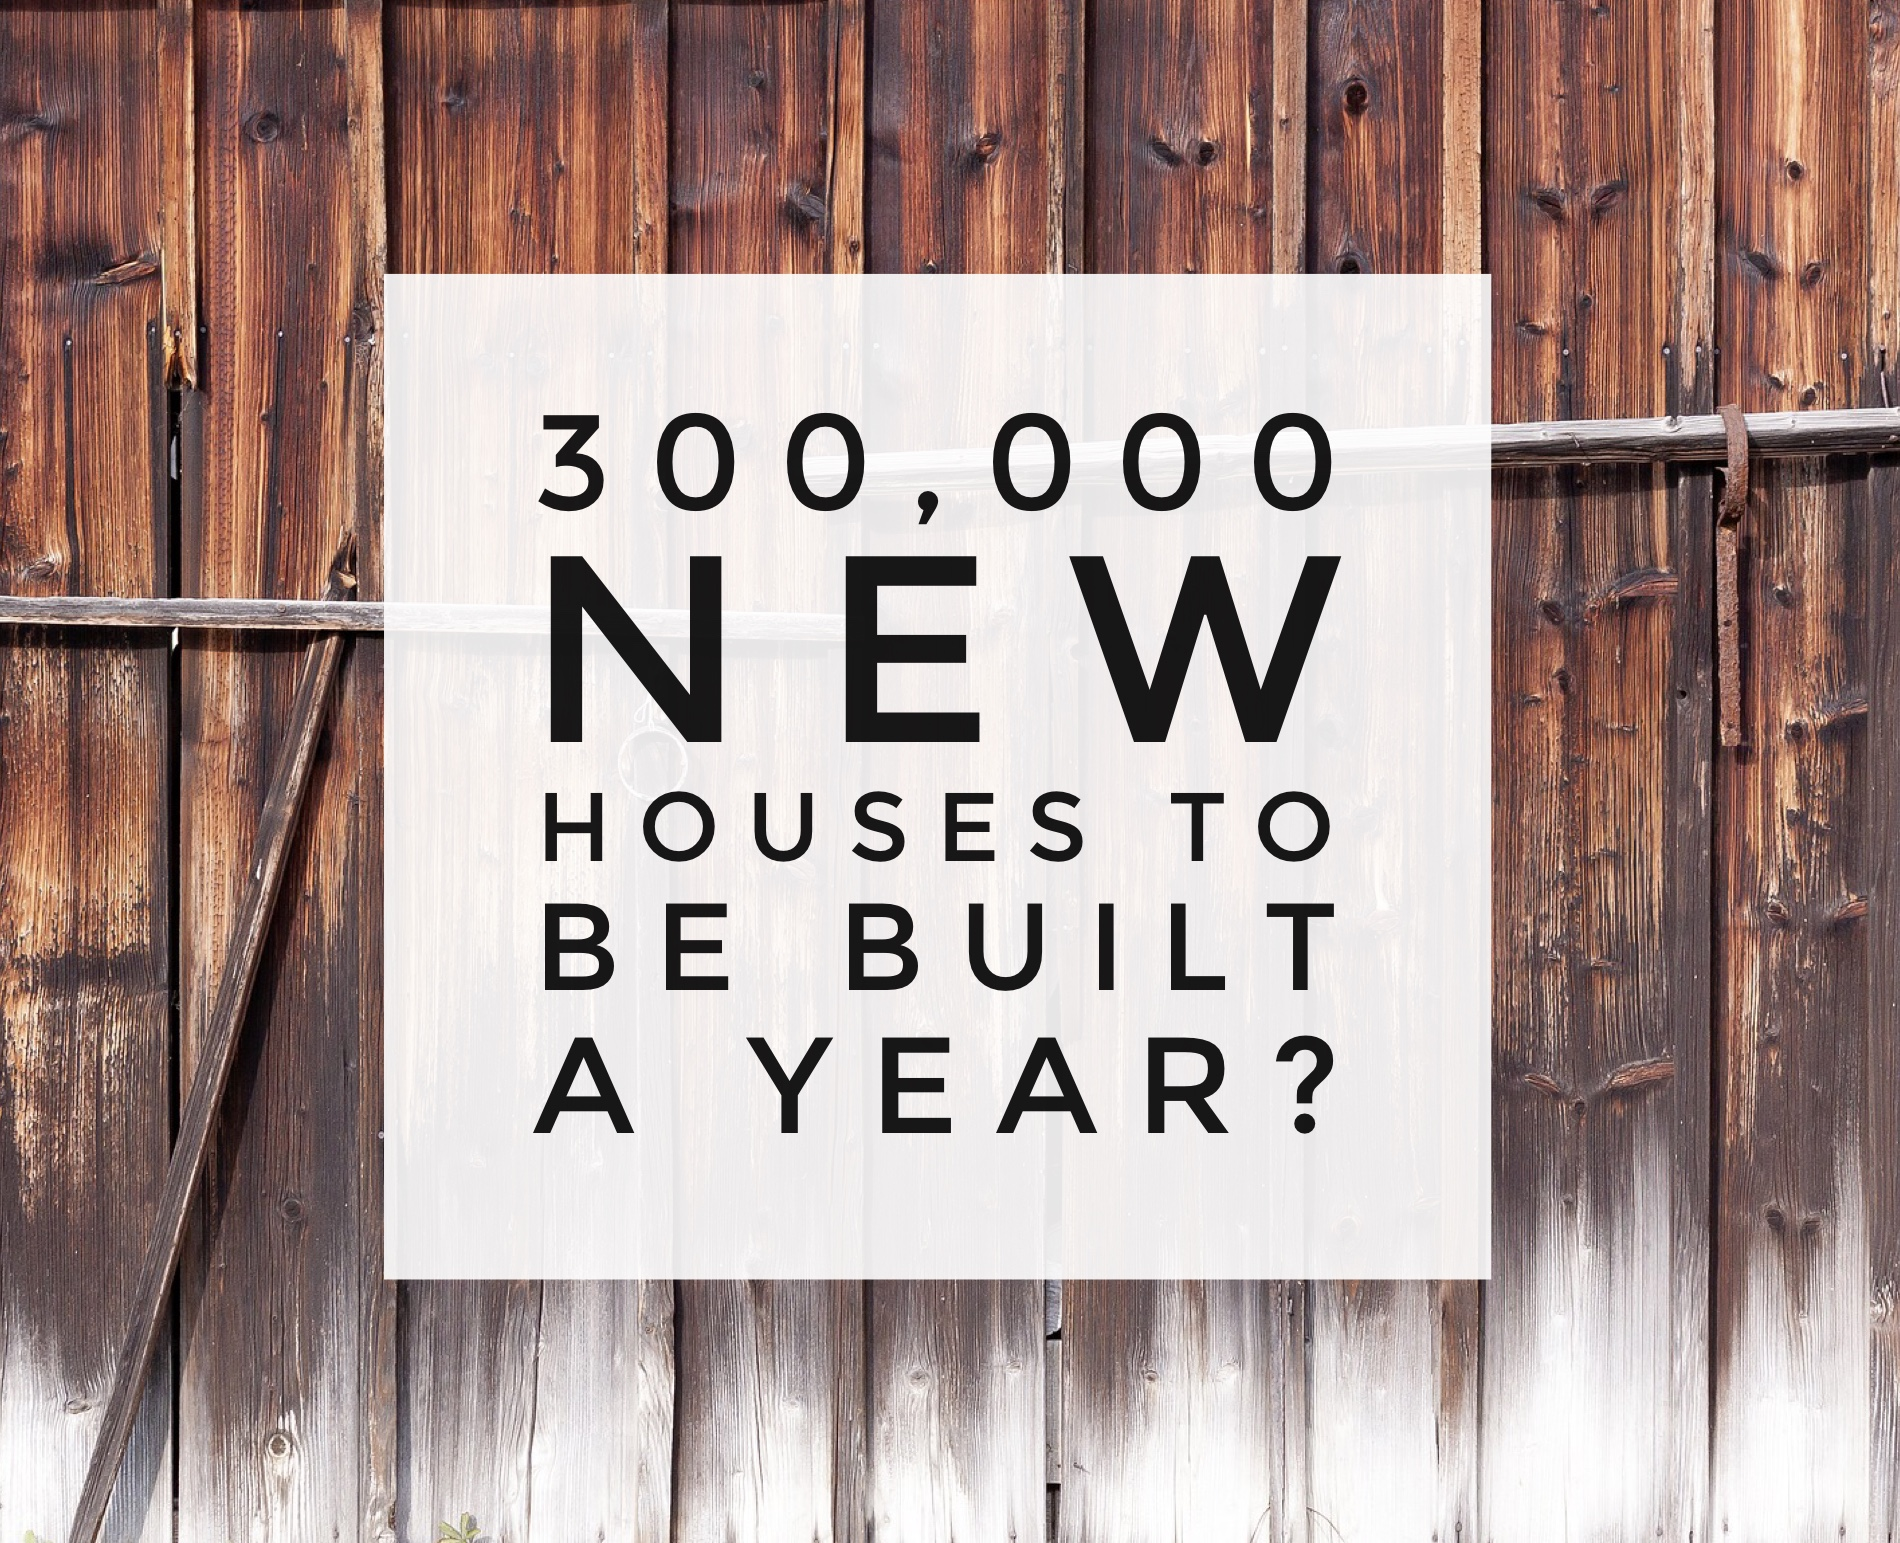 Canterbury Property Market and Hammond's Budget Promise to Build 300,000 more homes